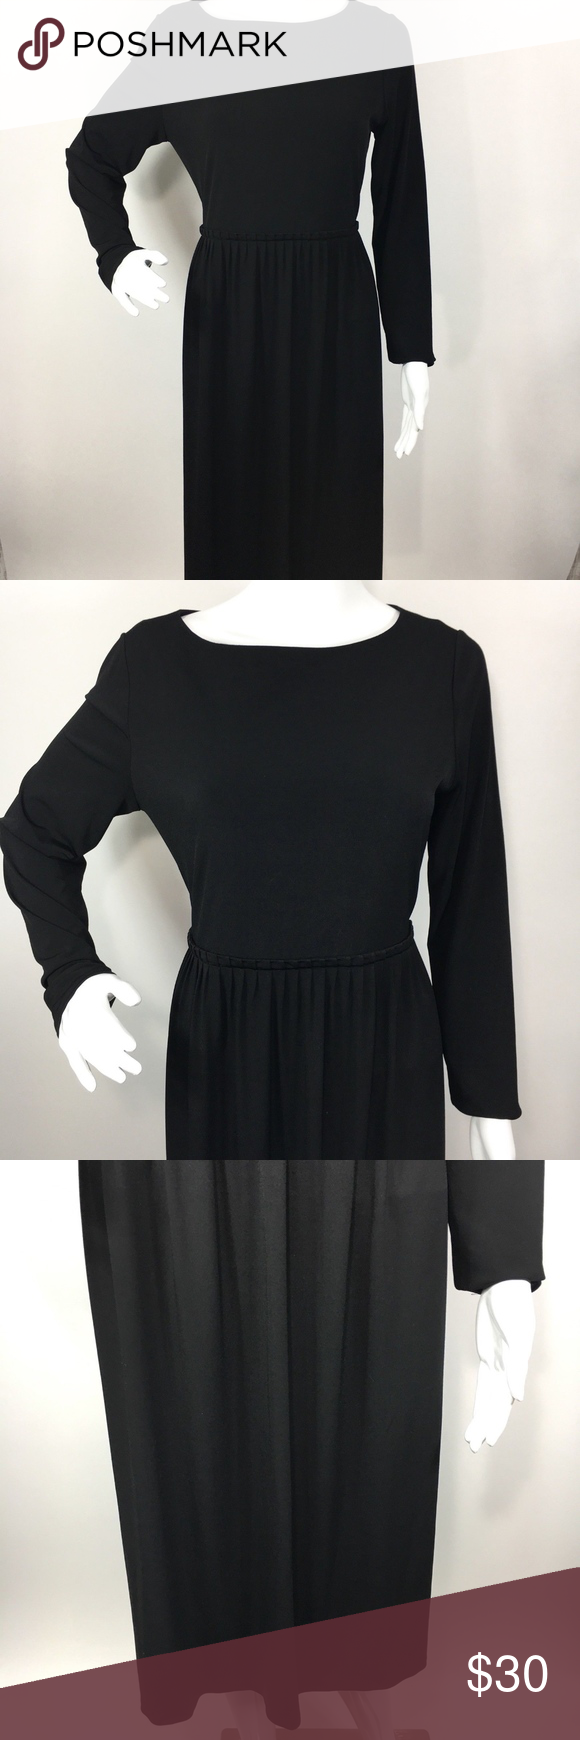 Calvin klein black long sleeve cocktail dress this item is in